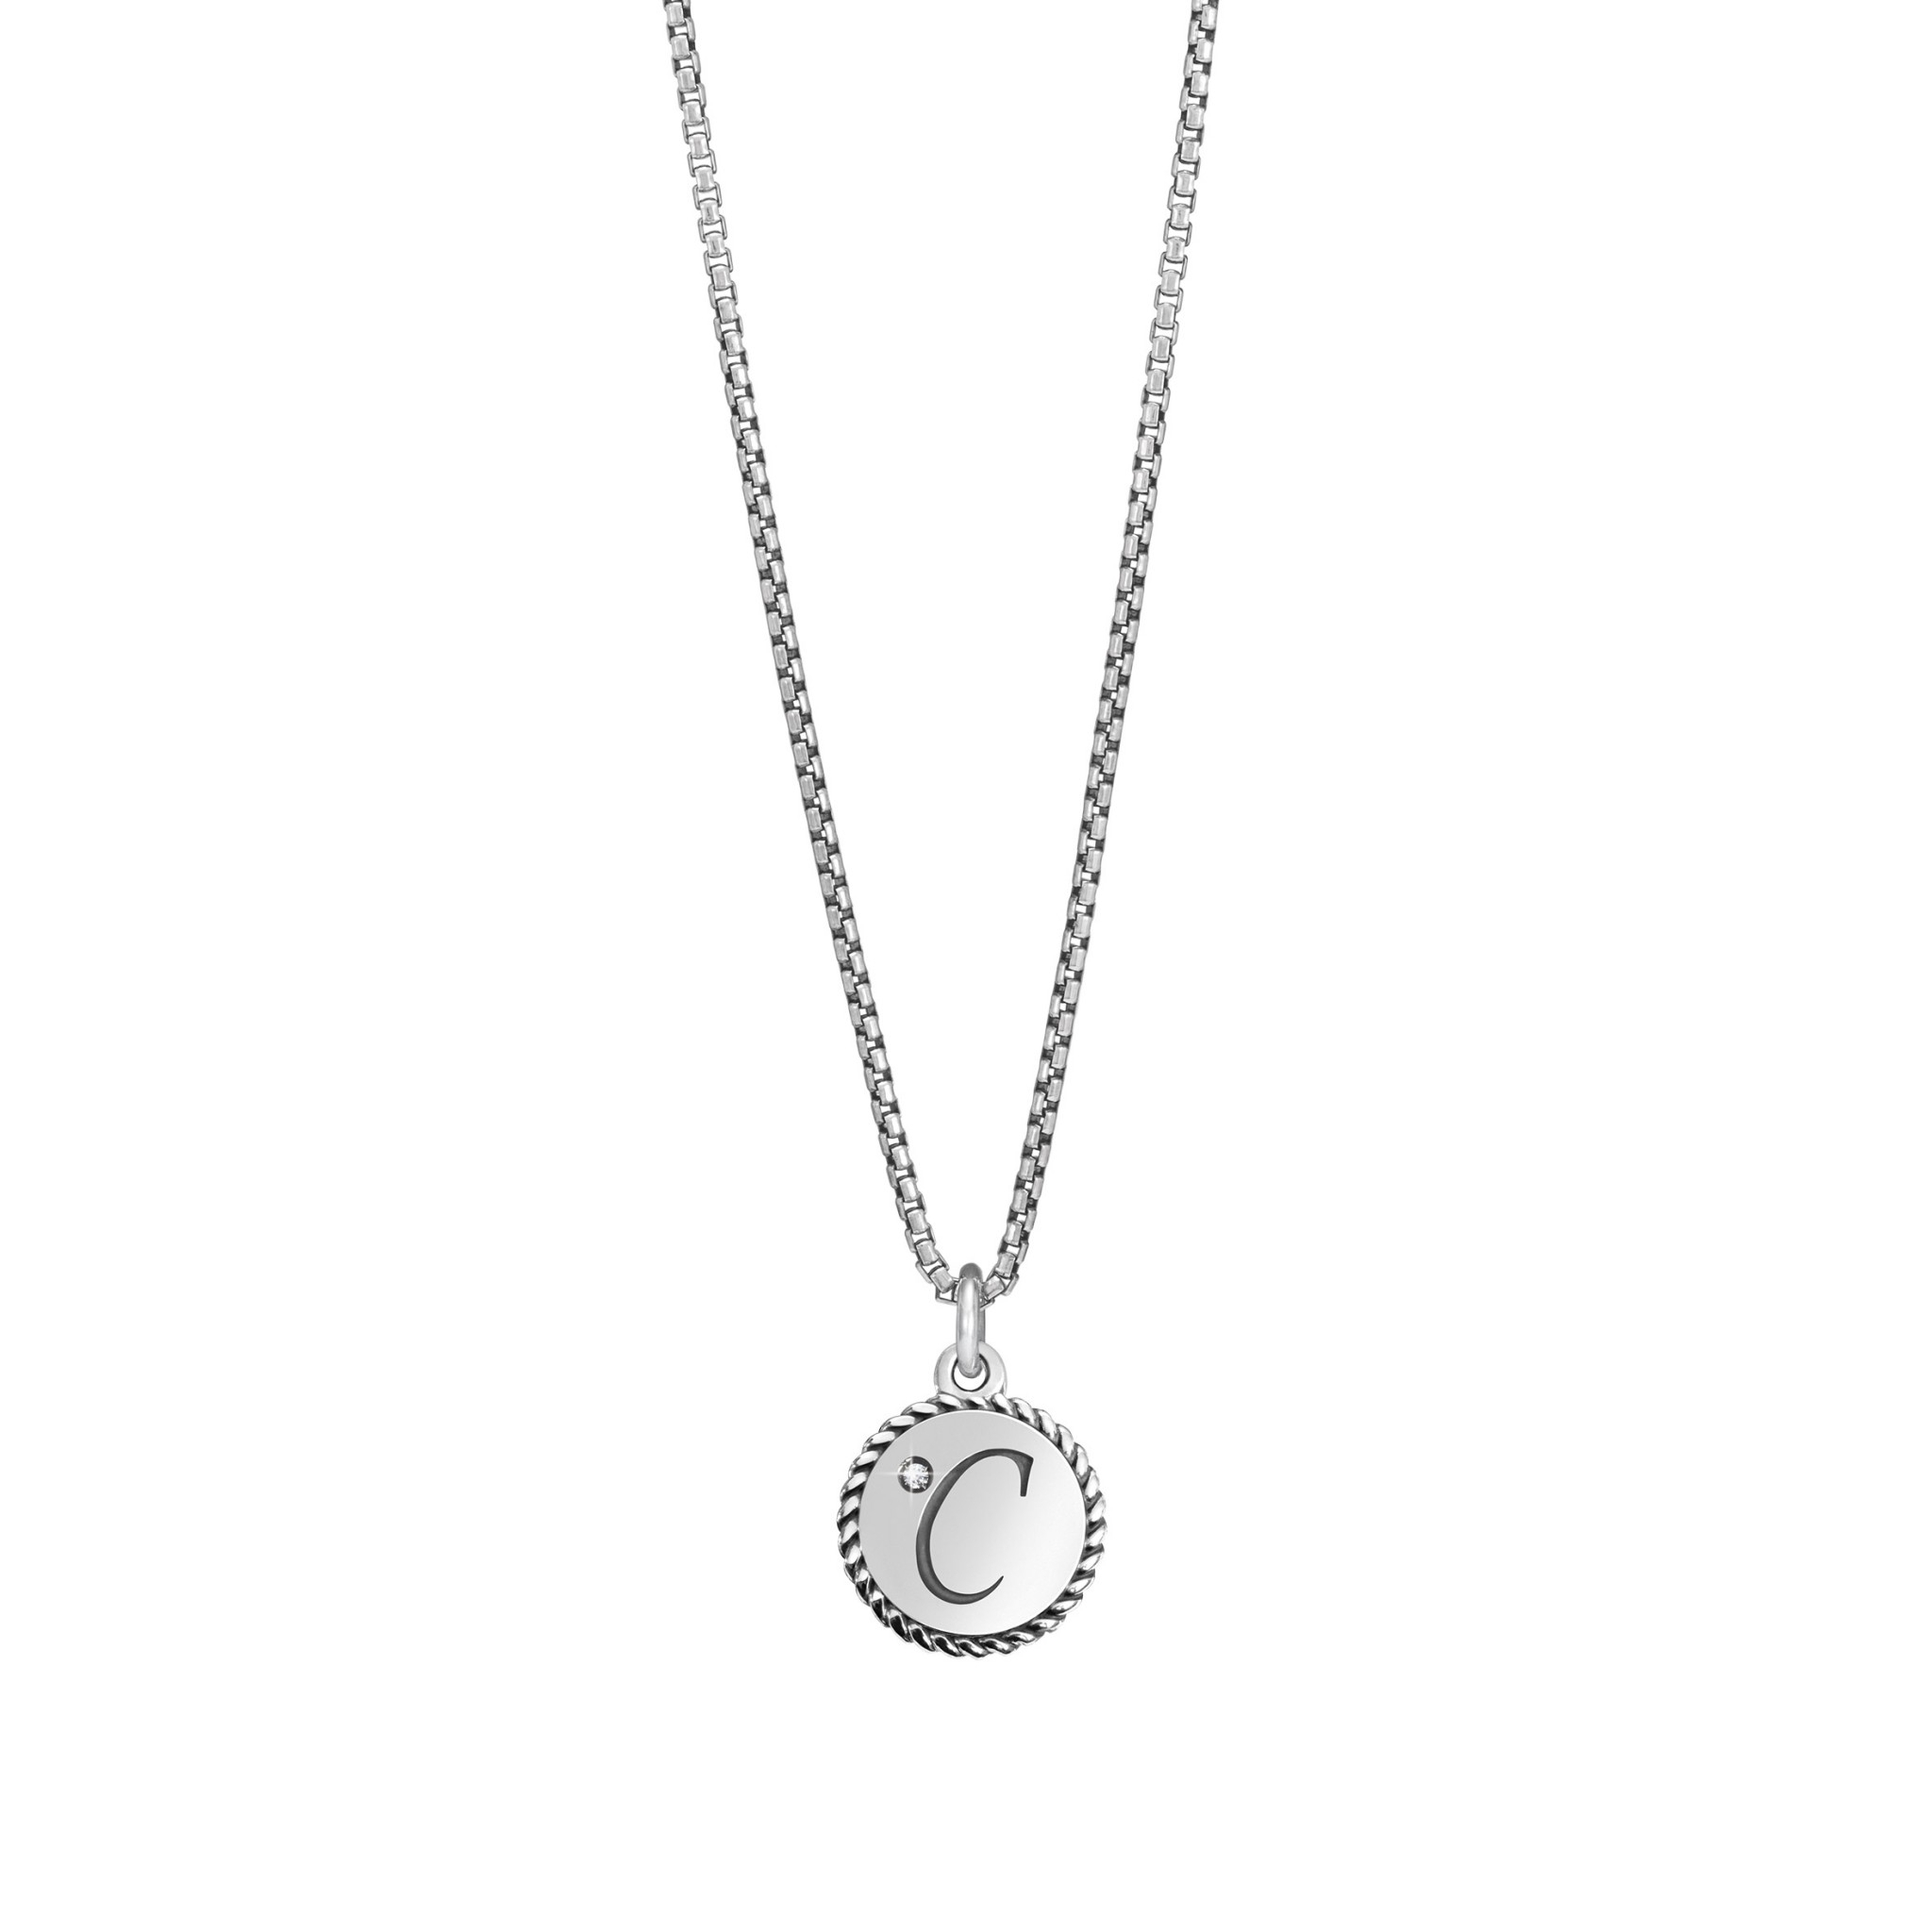 Necklace With Letter C In Silver And Gemstone For Most Recent Letter M Alphabet Locket Element Necklaces (View 16 of 25)